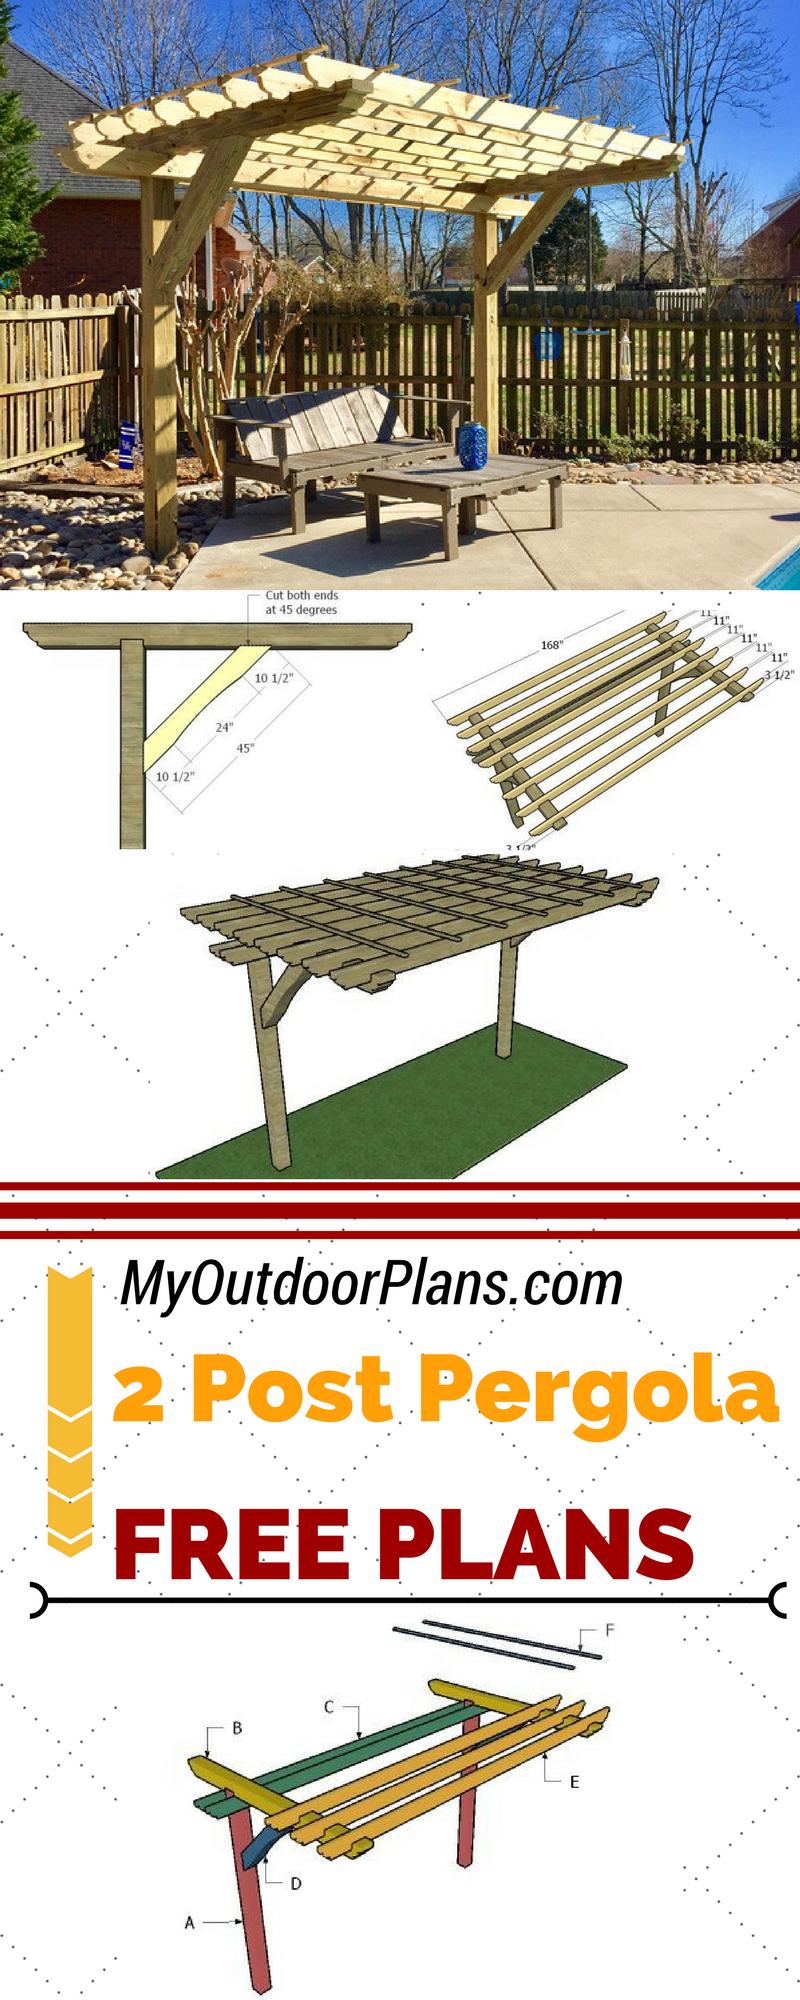 Learn How To Build A Cool 2 Post Pergola For Your Backyard Or Patio Follow My Step By Step Instructions And Plans For Pergola Pergola Plans Building A Pergola